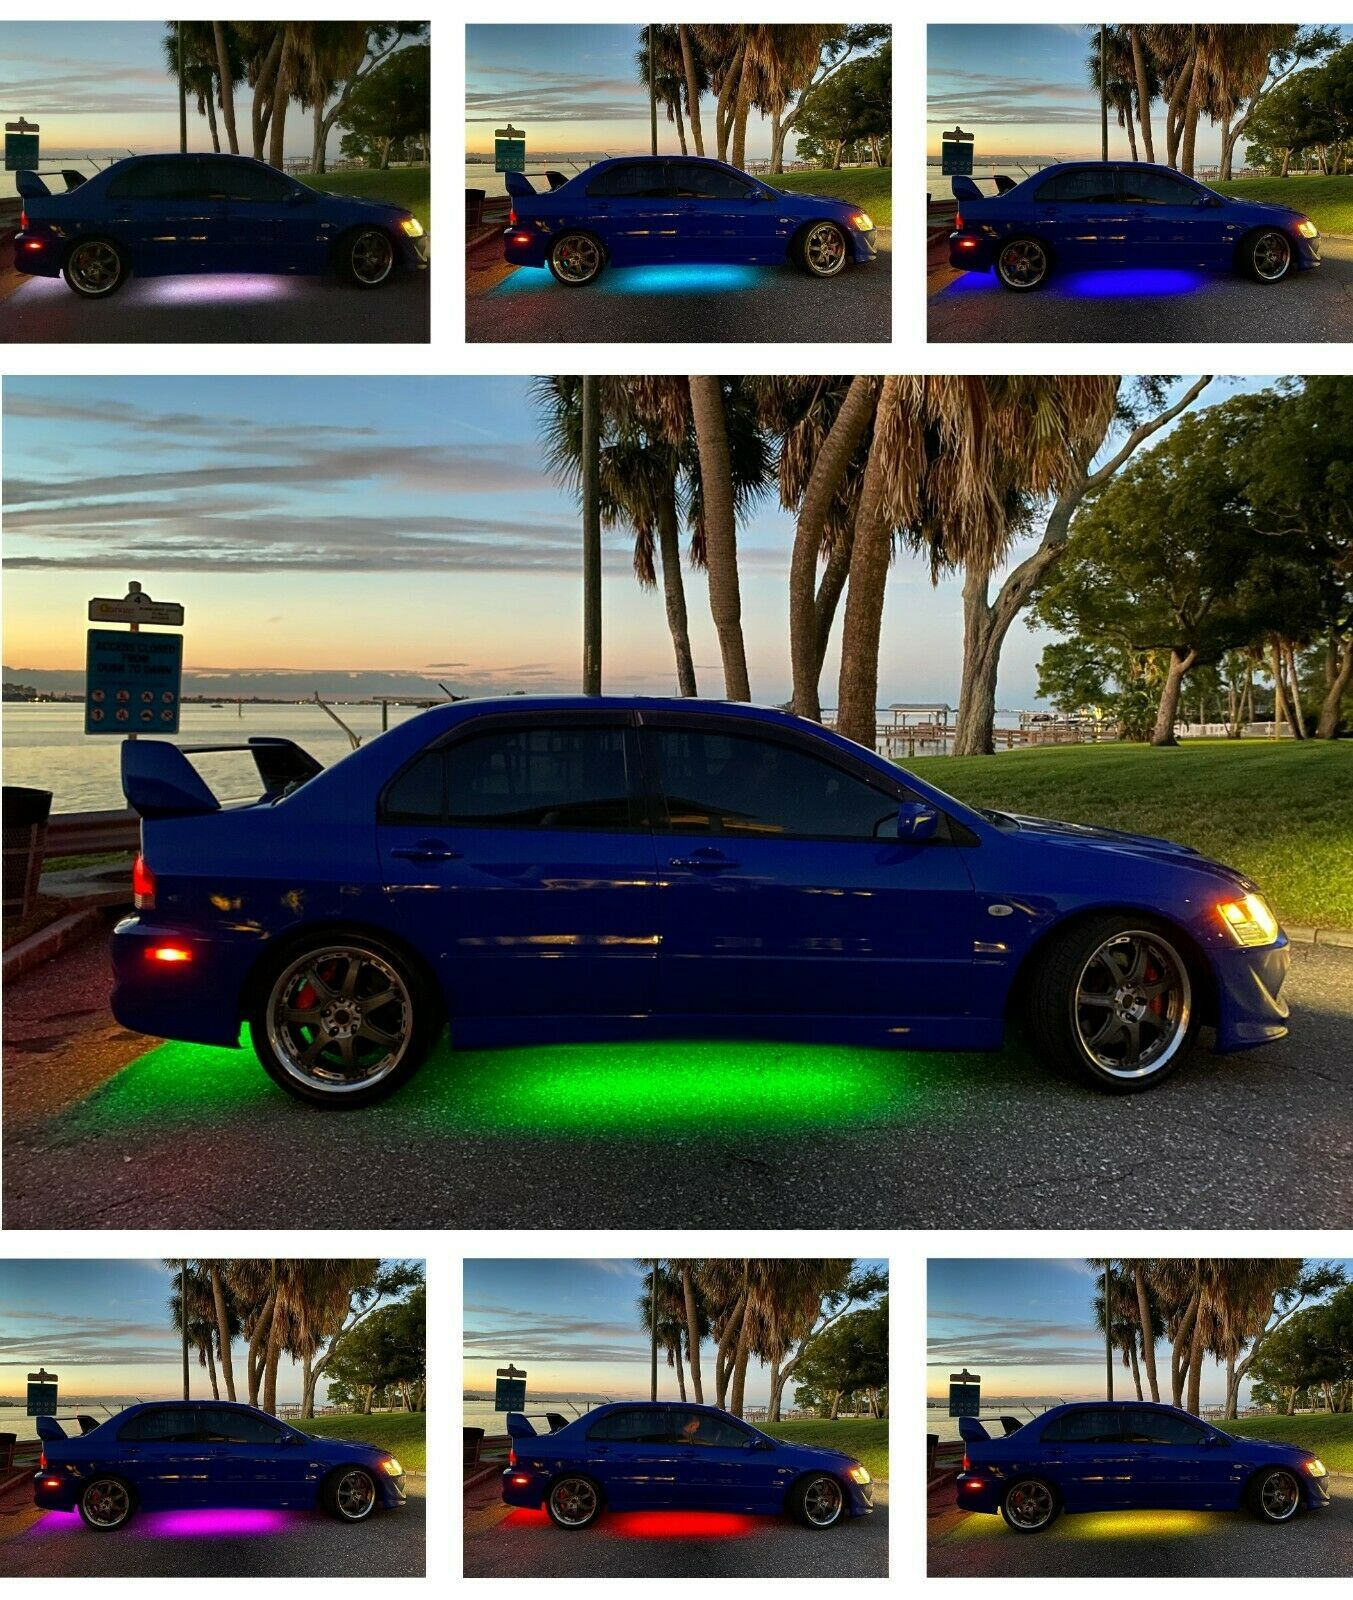 Used 2003 Mitsubishi Lancer Evolution 2003 Mitsubishi Lancer Evolution Evo 8 W 20 000 In Upgrades Tons Of Photos 2020 Is In Stock And For Sale 24carshop Mitsubishi Lancer Evolution Mitsubishi Lancer Evo 8